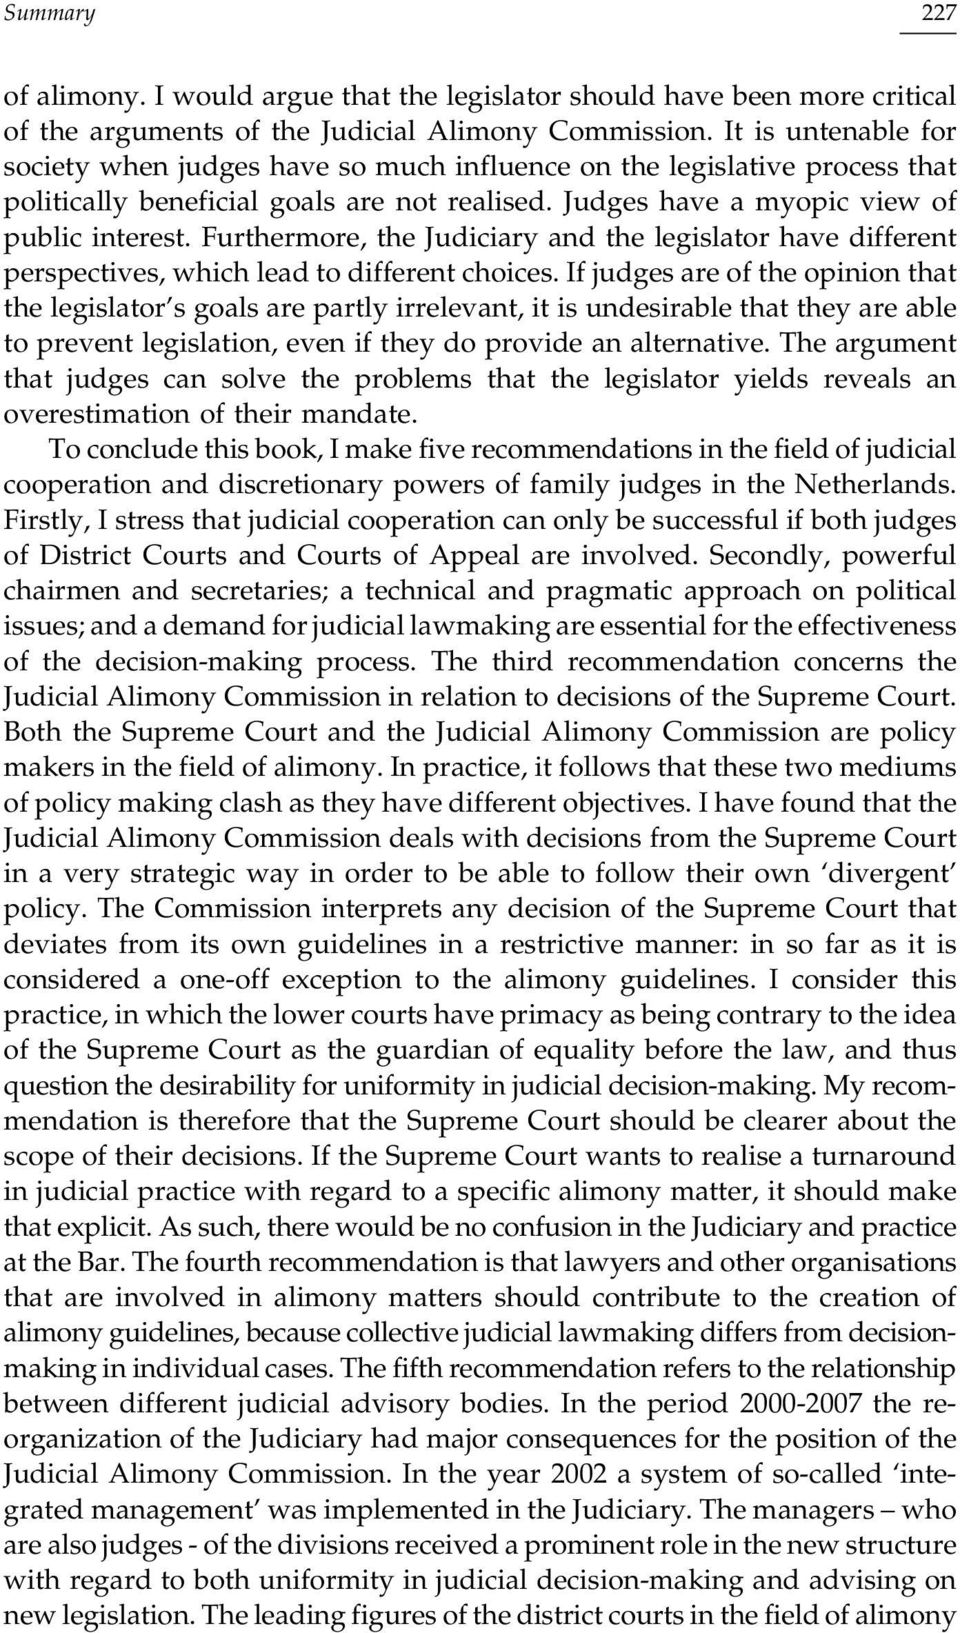 Furthermore, the Judiciary and the legislator have different perspectives, which lead to different choices.